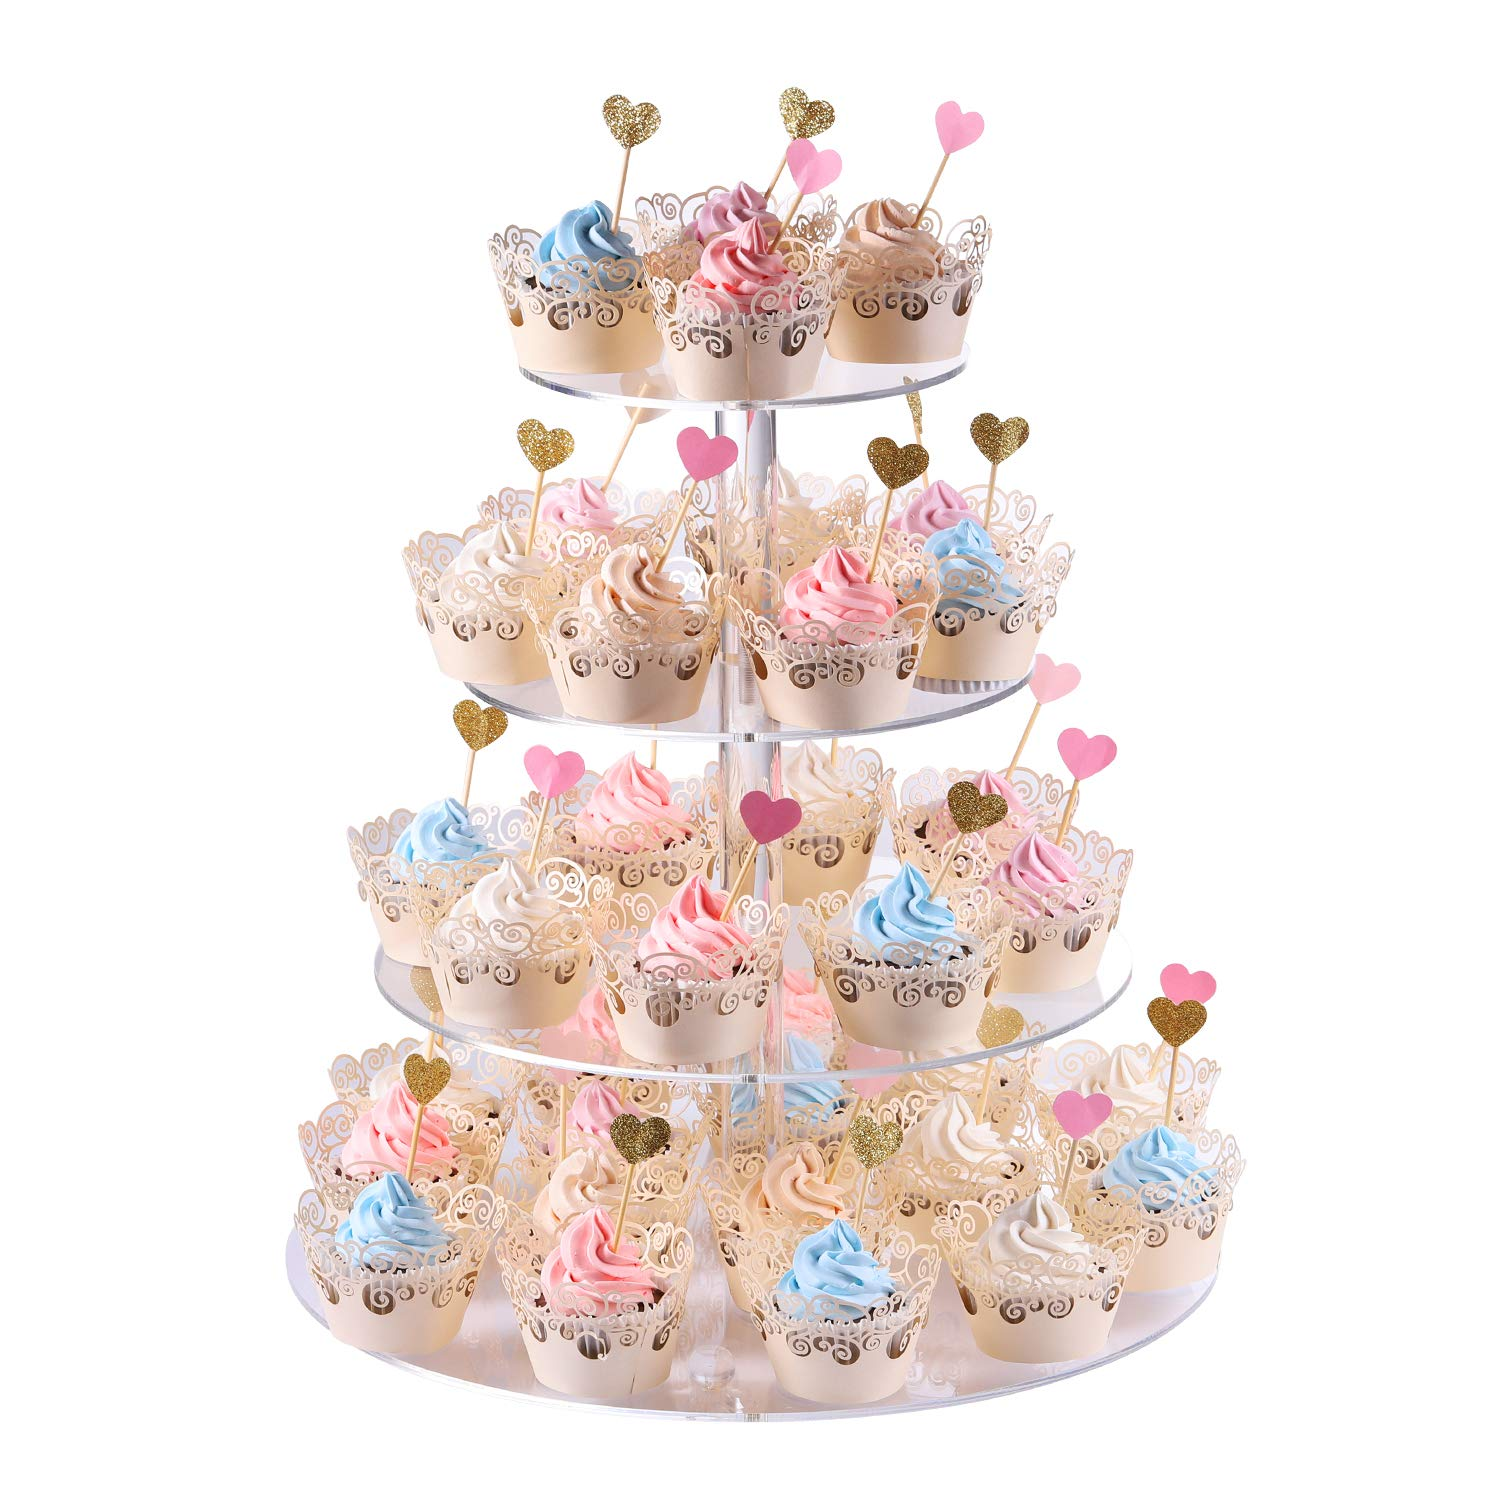 Cupcake stand, 4-Tier Round Acrylic Cupcake Display Stand Dessert Tower Pastry Stand for Wedding Birthday Theme Party- 15 Inches (Transparent)